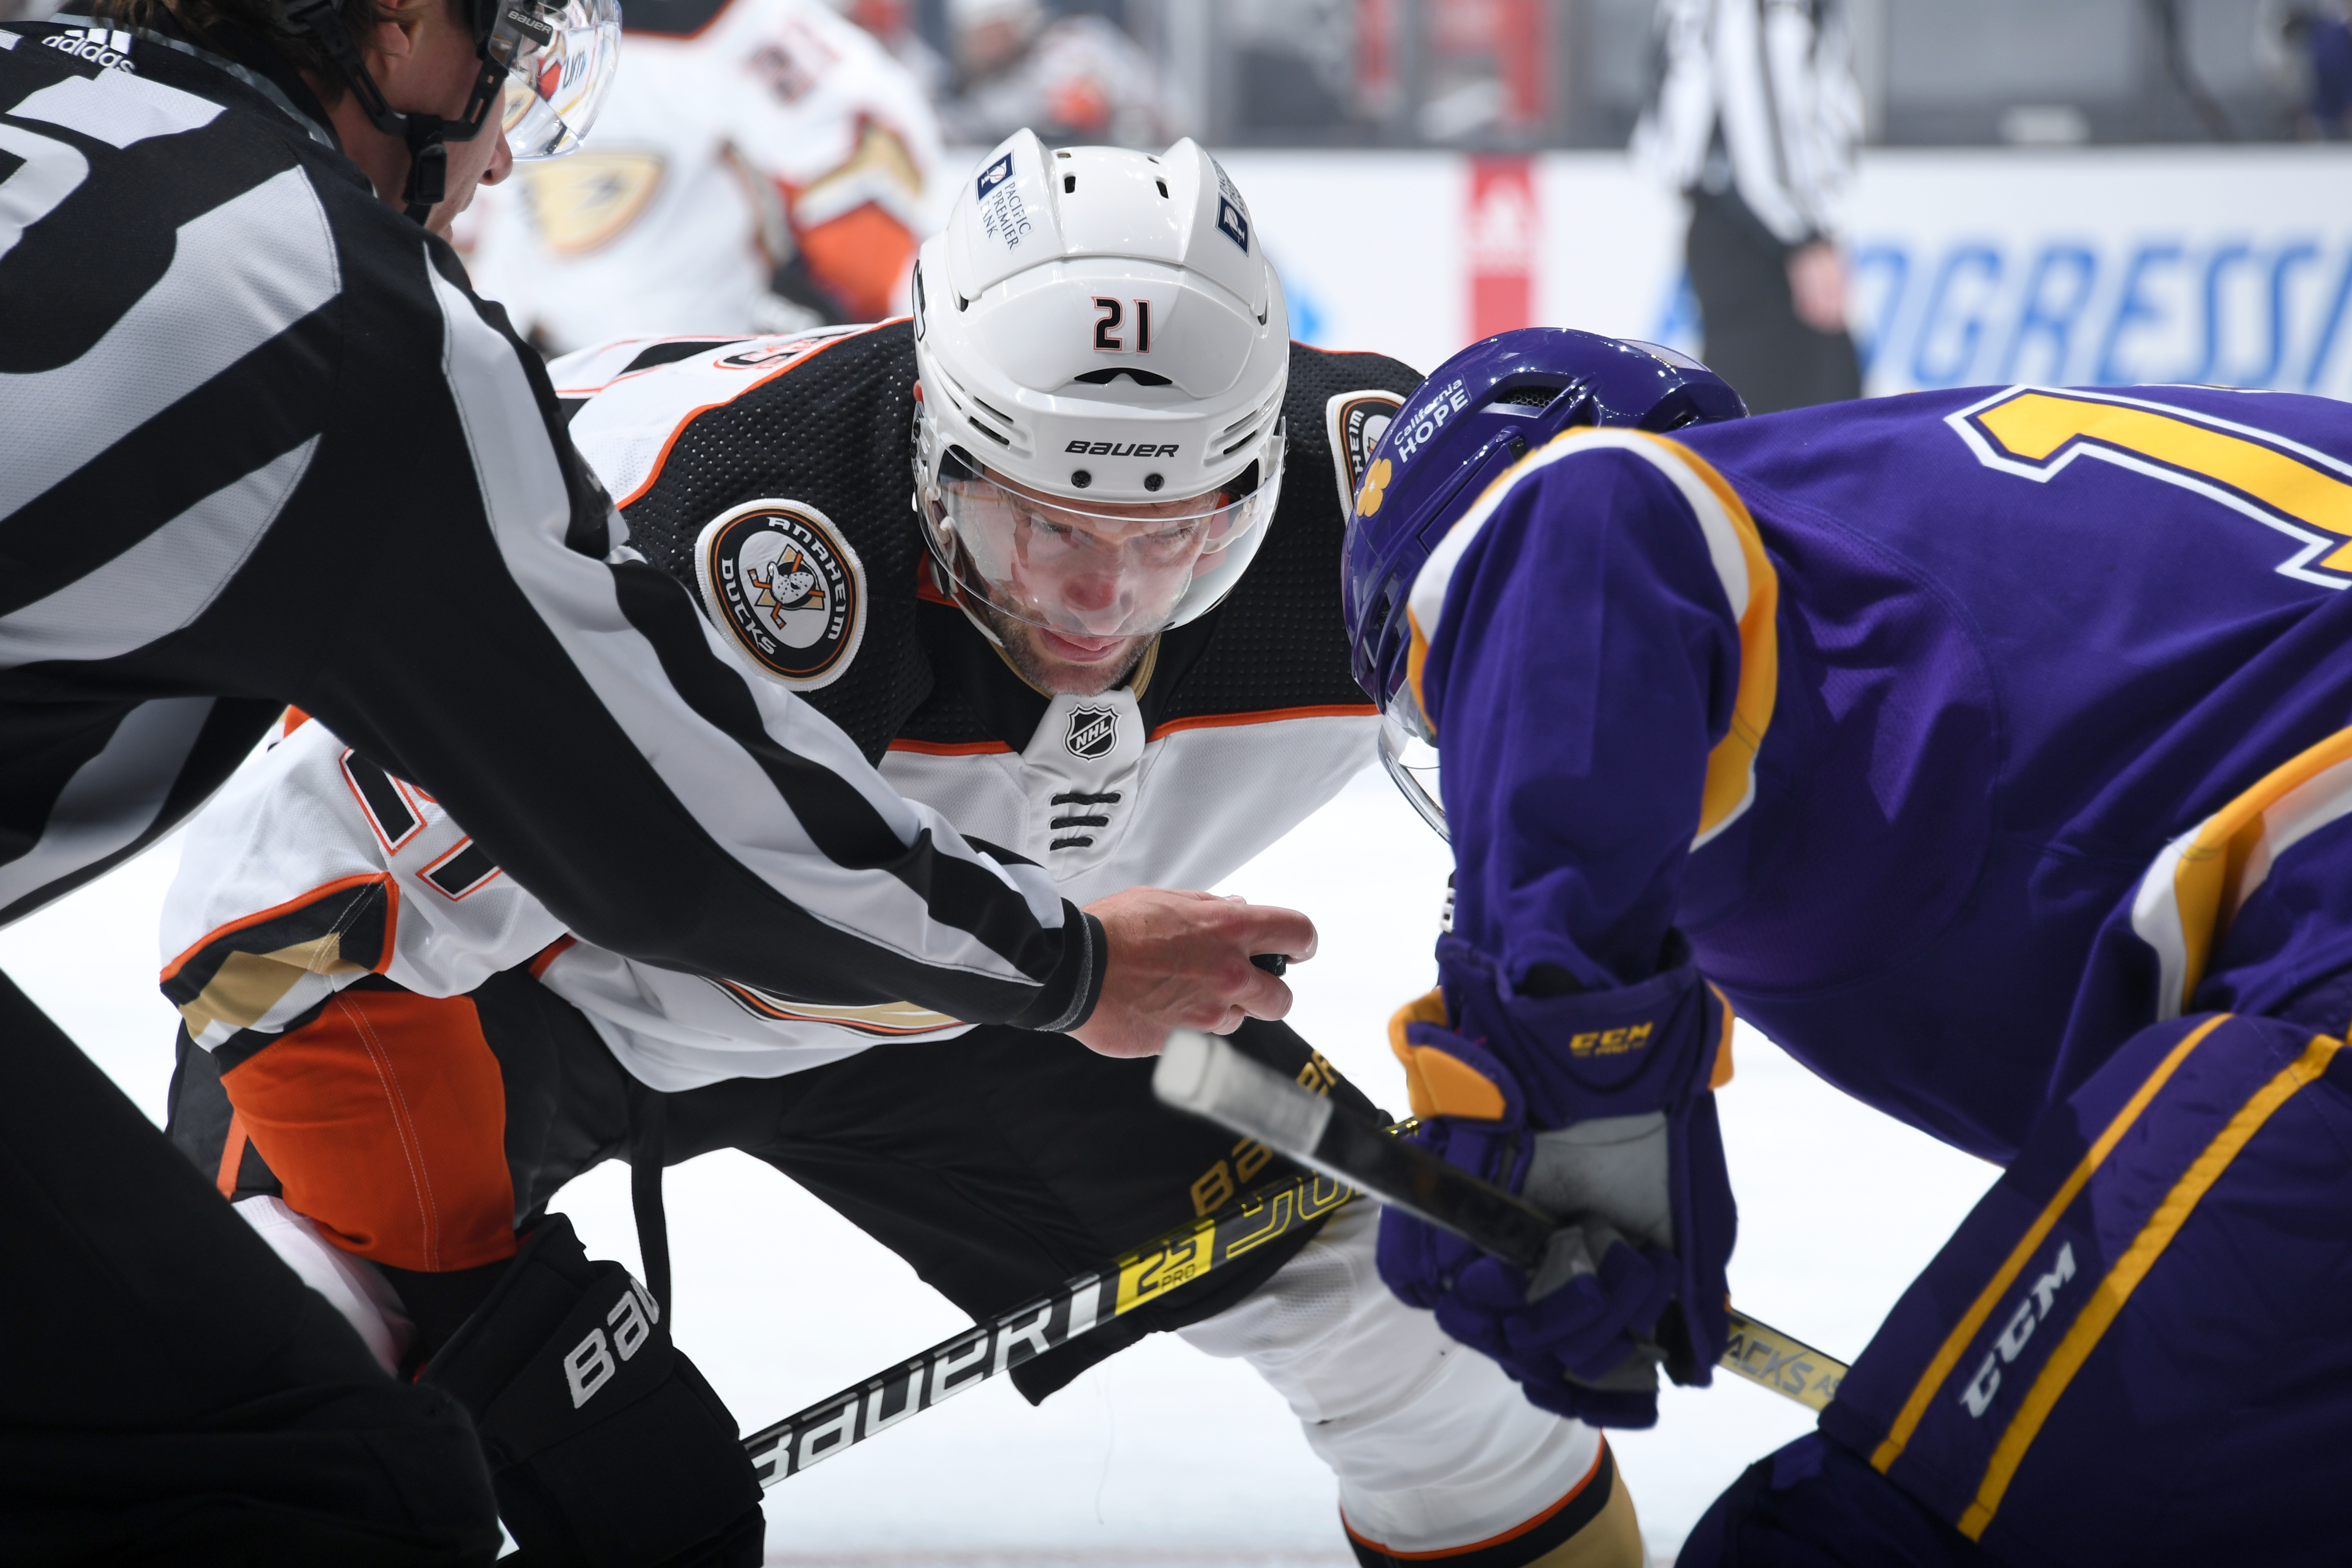 David Backes #21 of the Anaheim Ducks gets ready for the puck drop during the first period against the Los Angeles Kings at STAPLES Center on February 2, 2021 in Los Angeles, California.